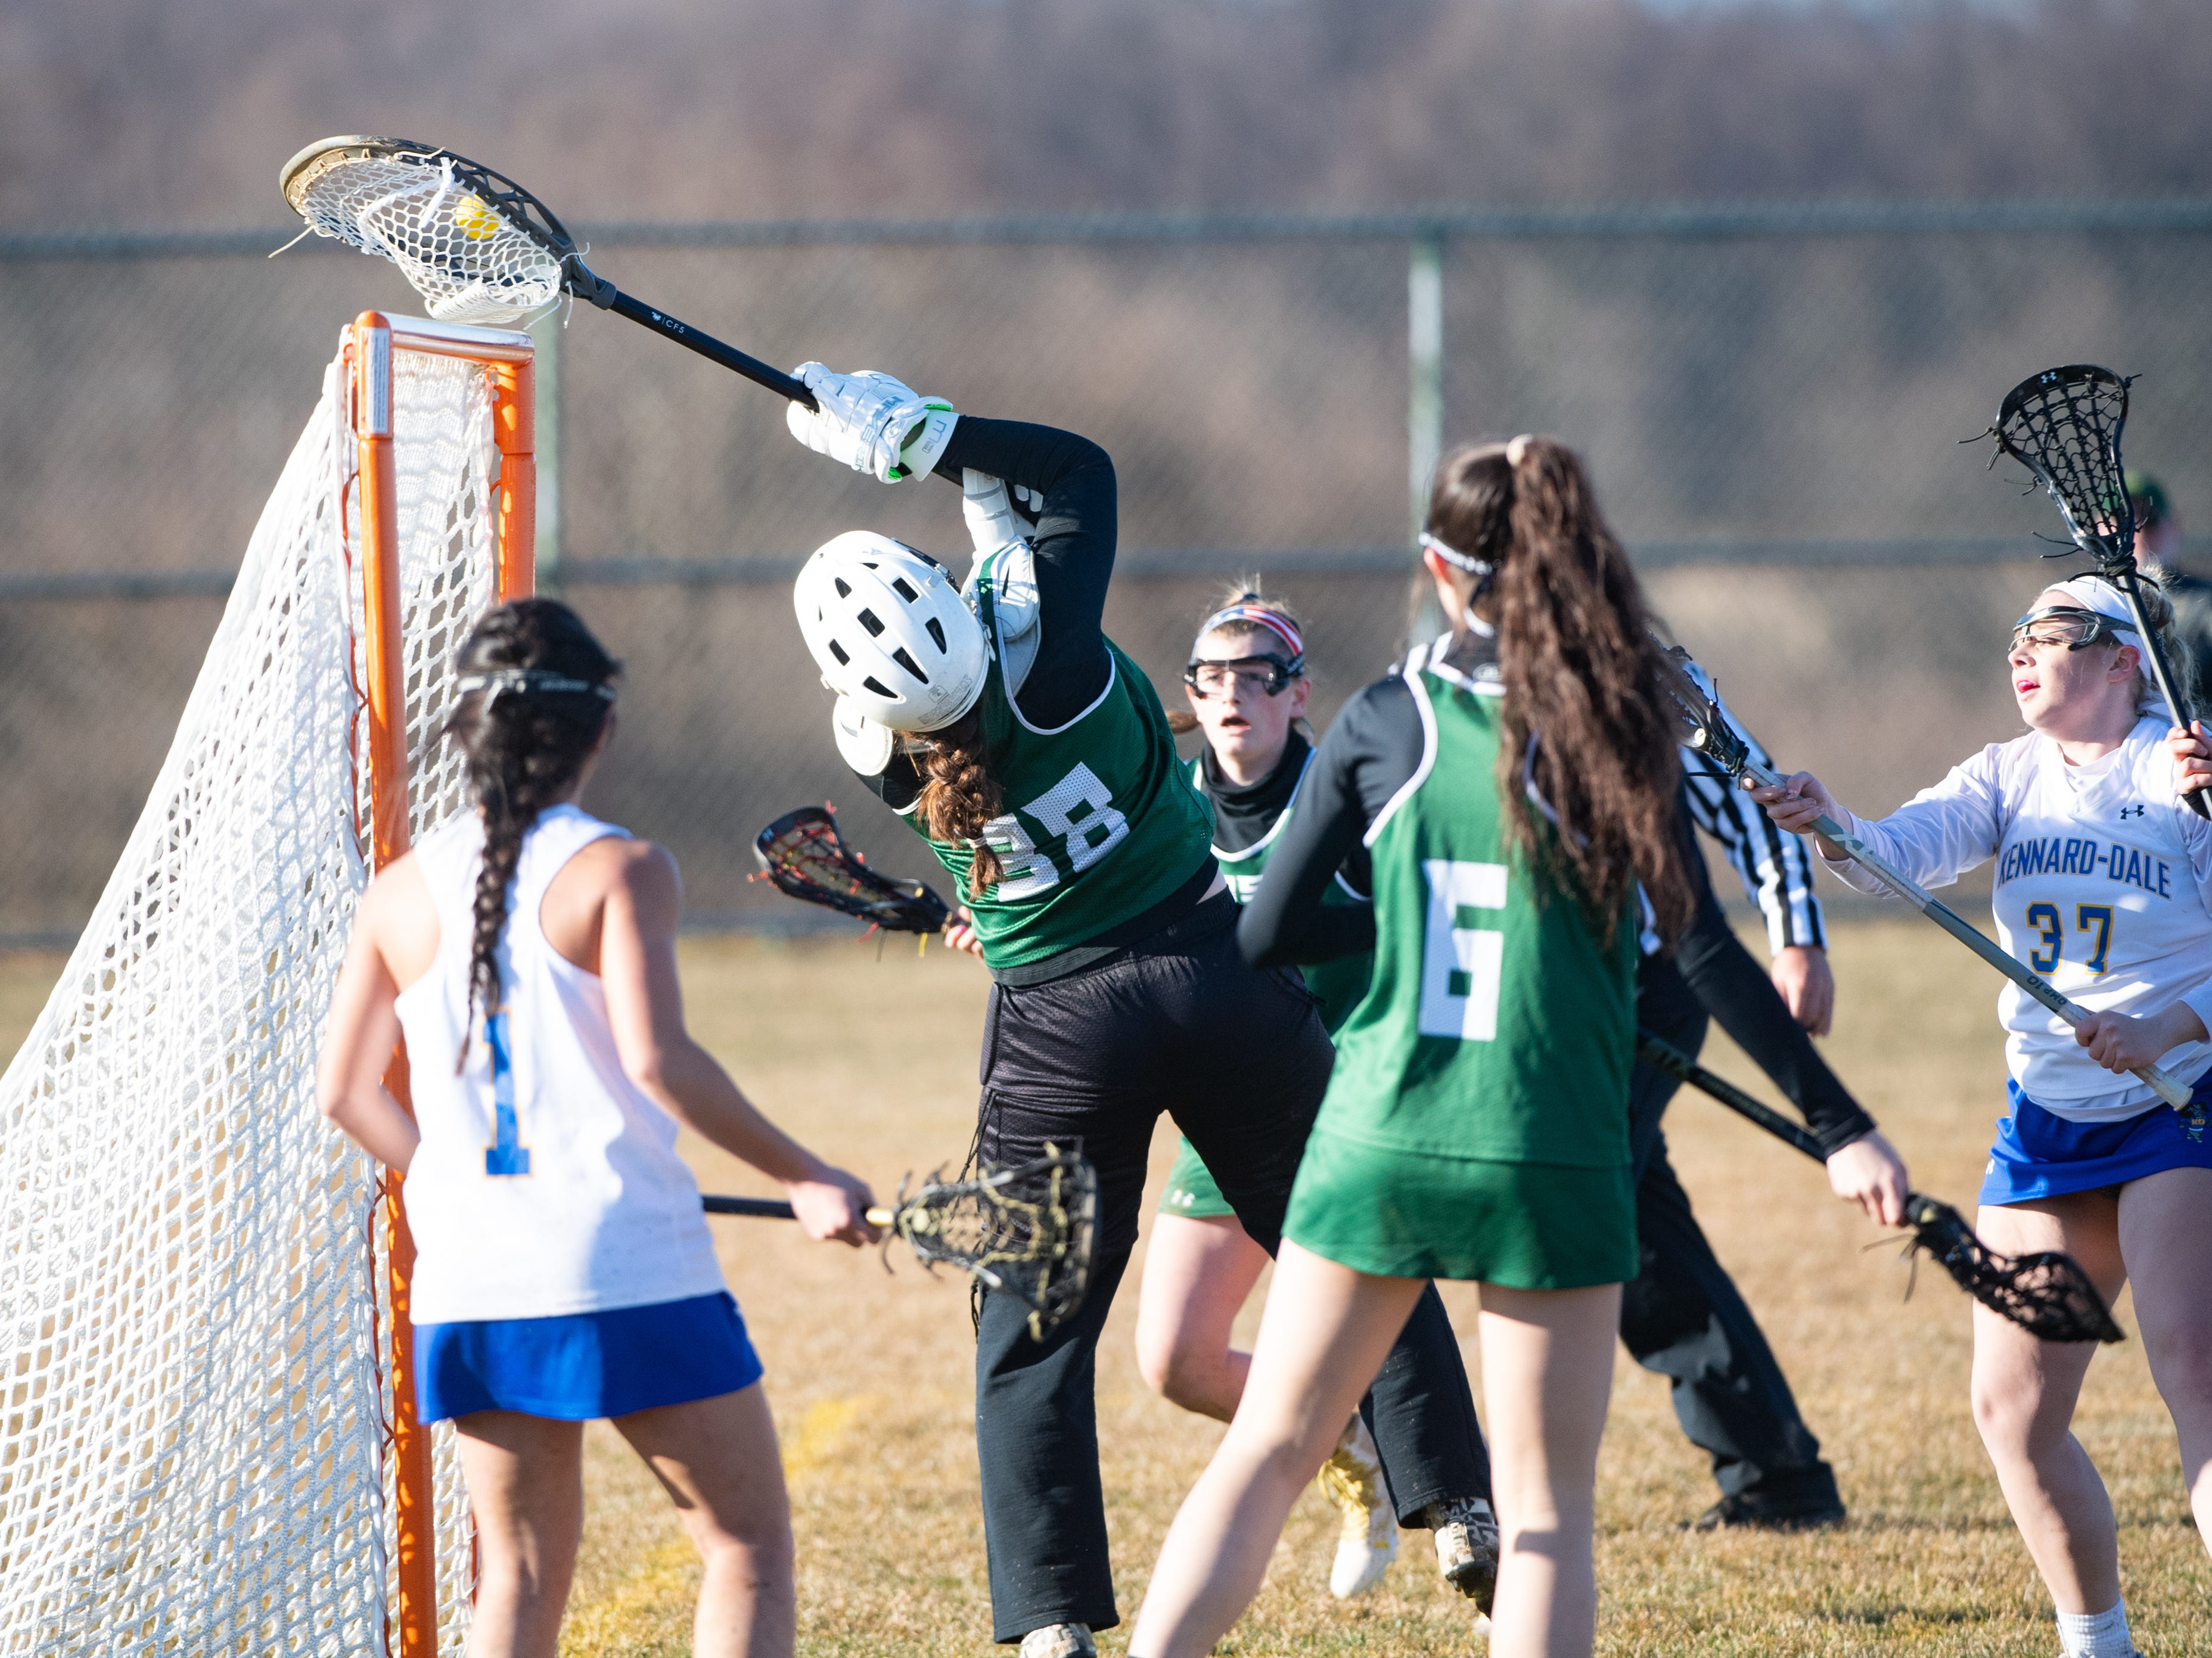 Morghan Kilduff (38) makes an acrobatic save during the girls' lacrosse game between Kennard-Dale and York Catholic, March 26, 2019 at Kennard-Dale High School. The Fighting Irish defeated the Rams 10 to 9.